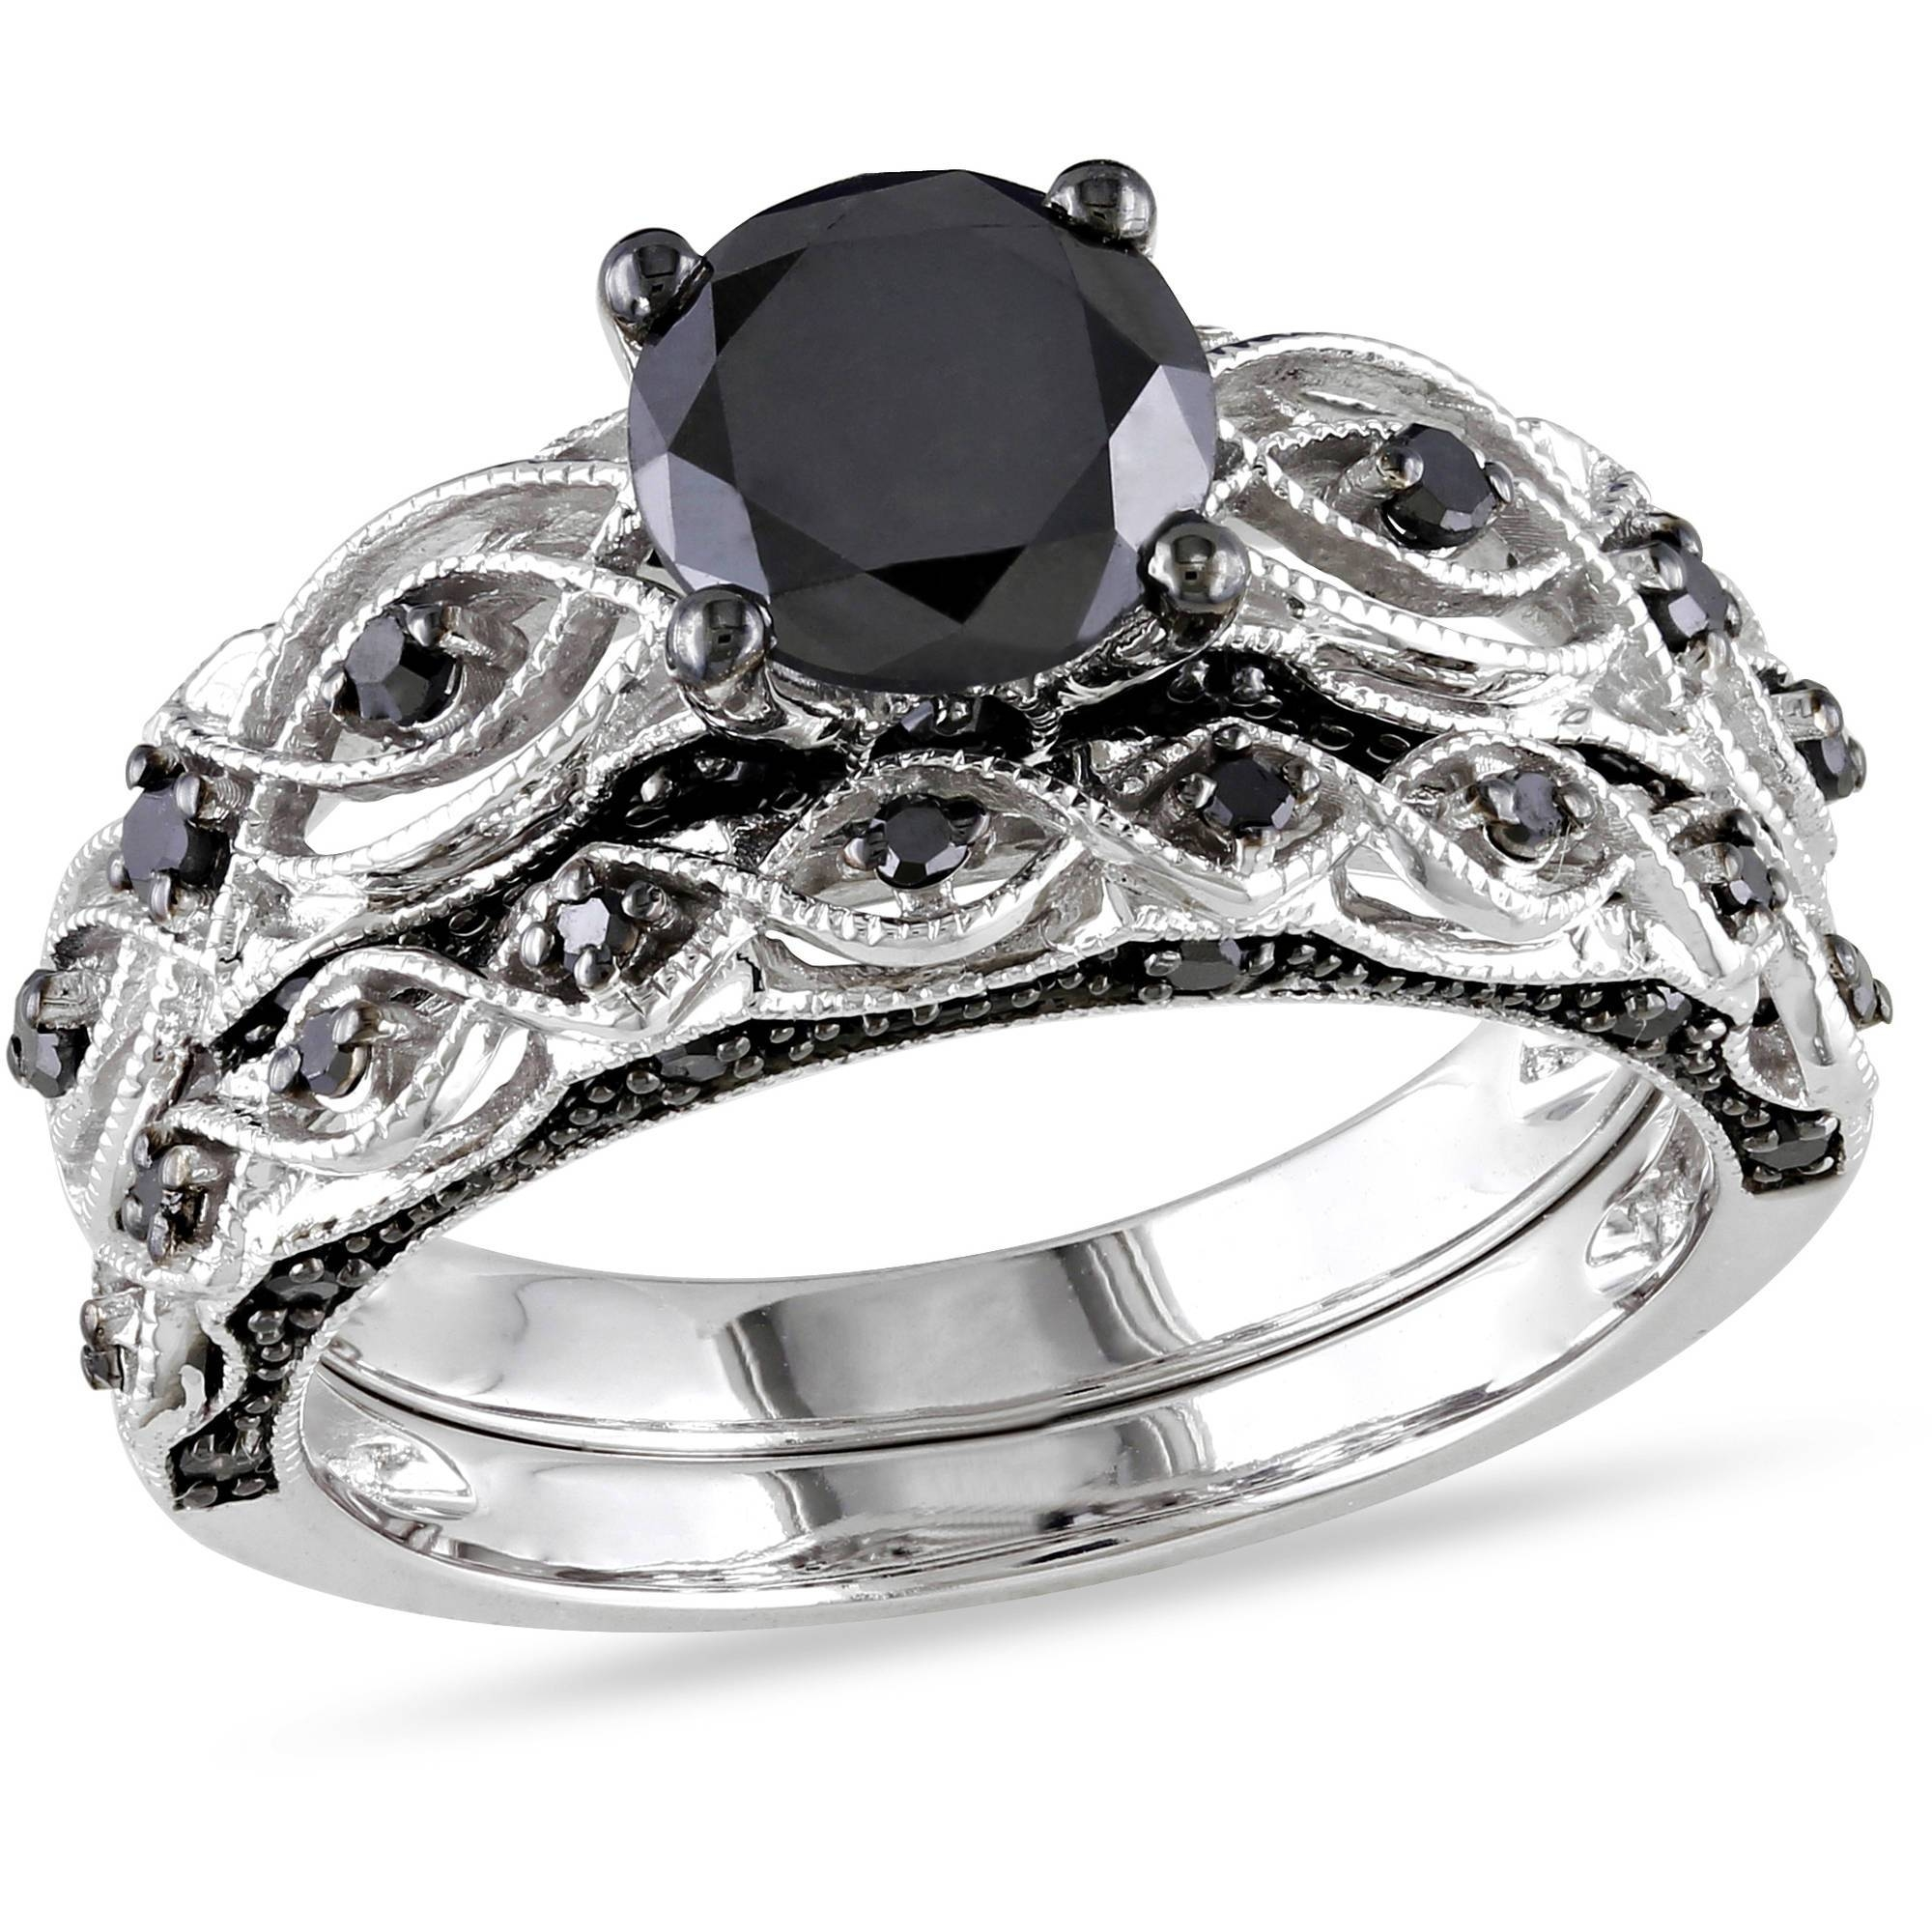 Wedding Rings : Chocolate Diamonds Ring At Zales | Caymancode For Throughout Zales Mens Engagement Rings (View 5 of 15)